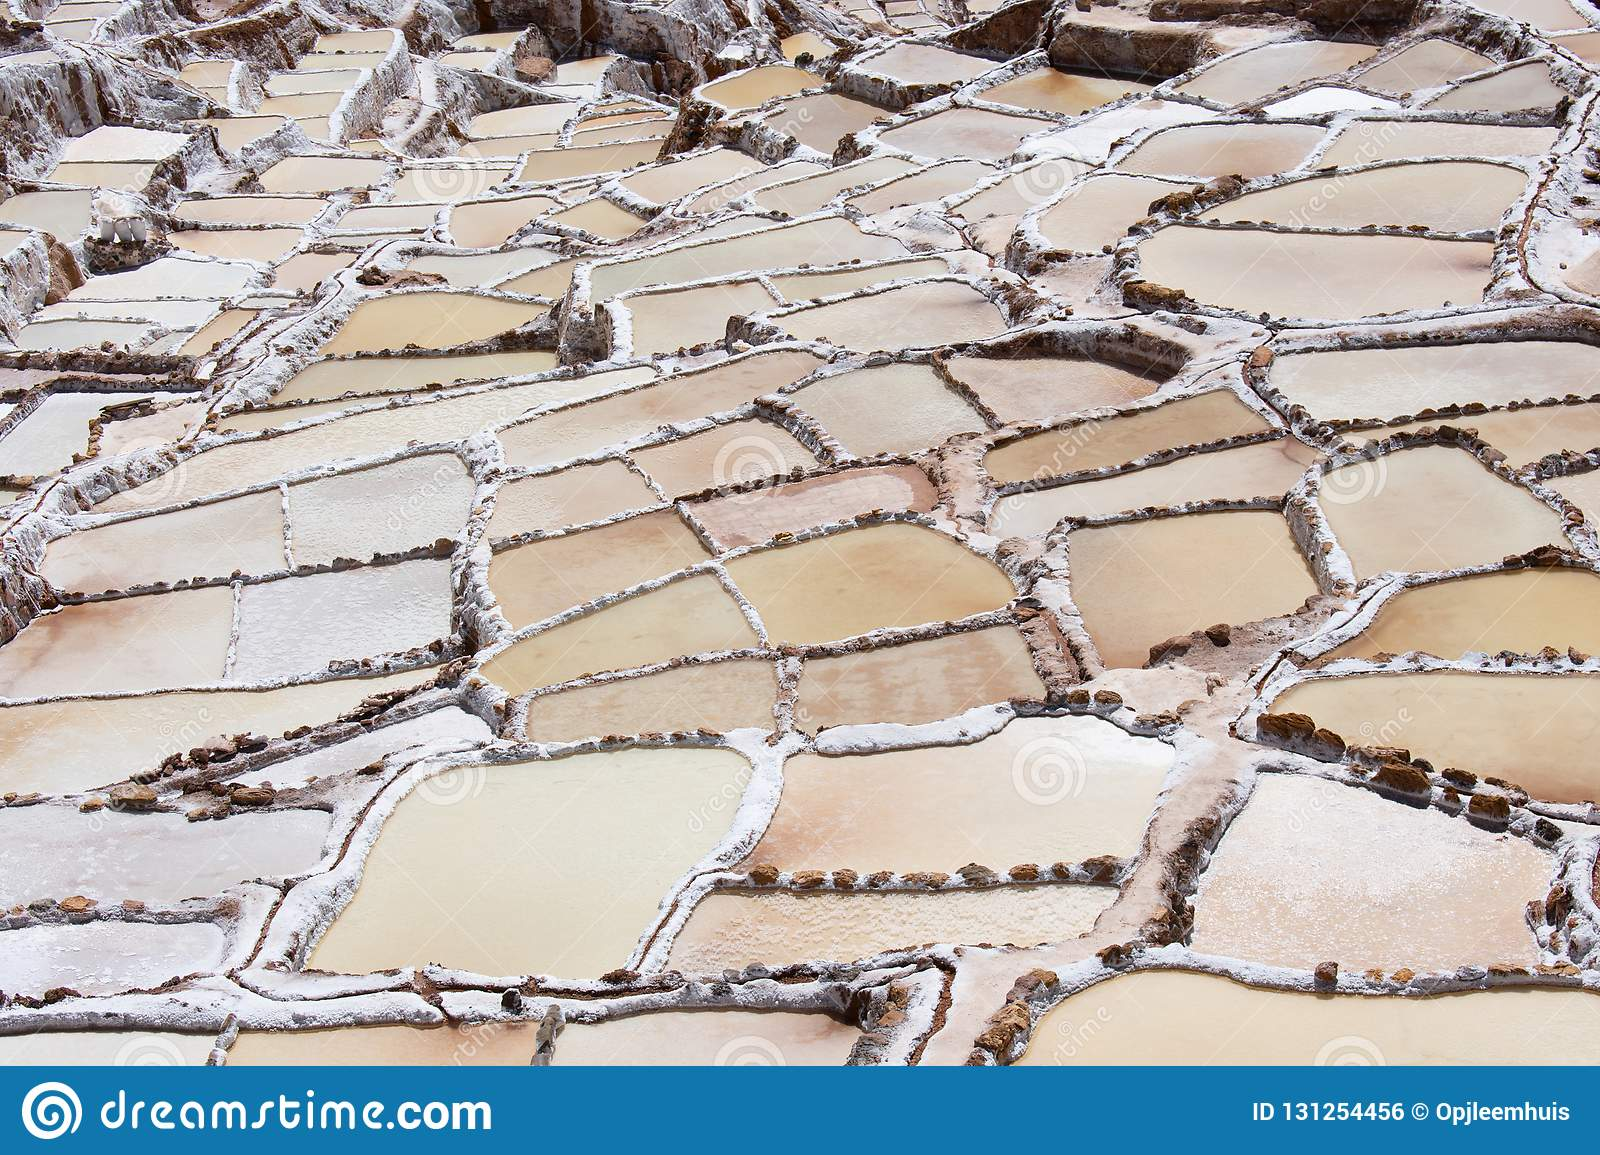 Salt Mines in the Sacred Valley of the Incas